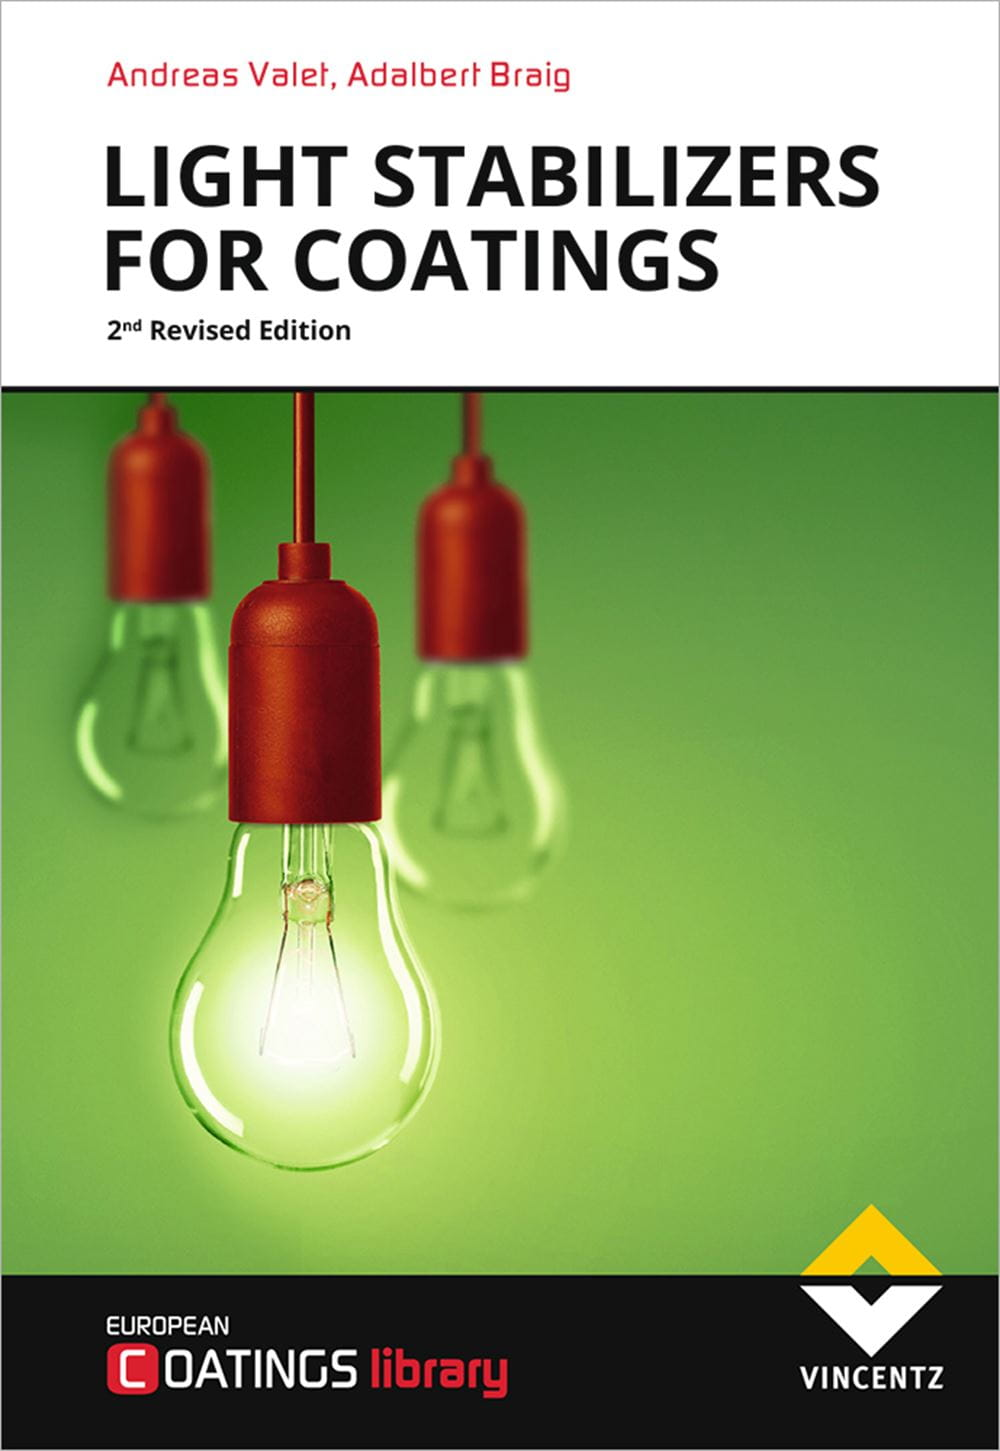 EC Library Light Stabilizers for Coatings